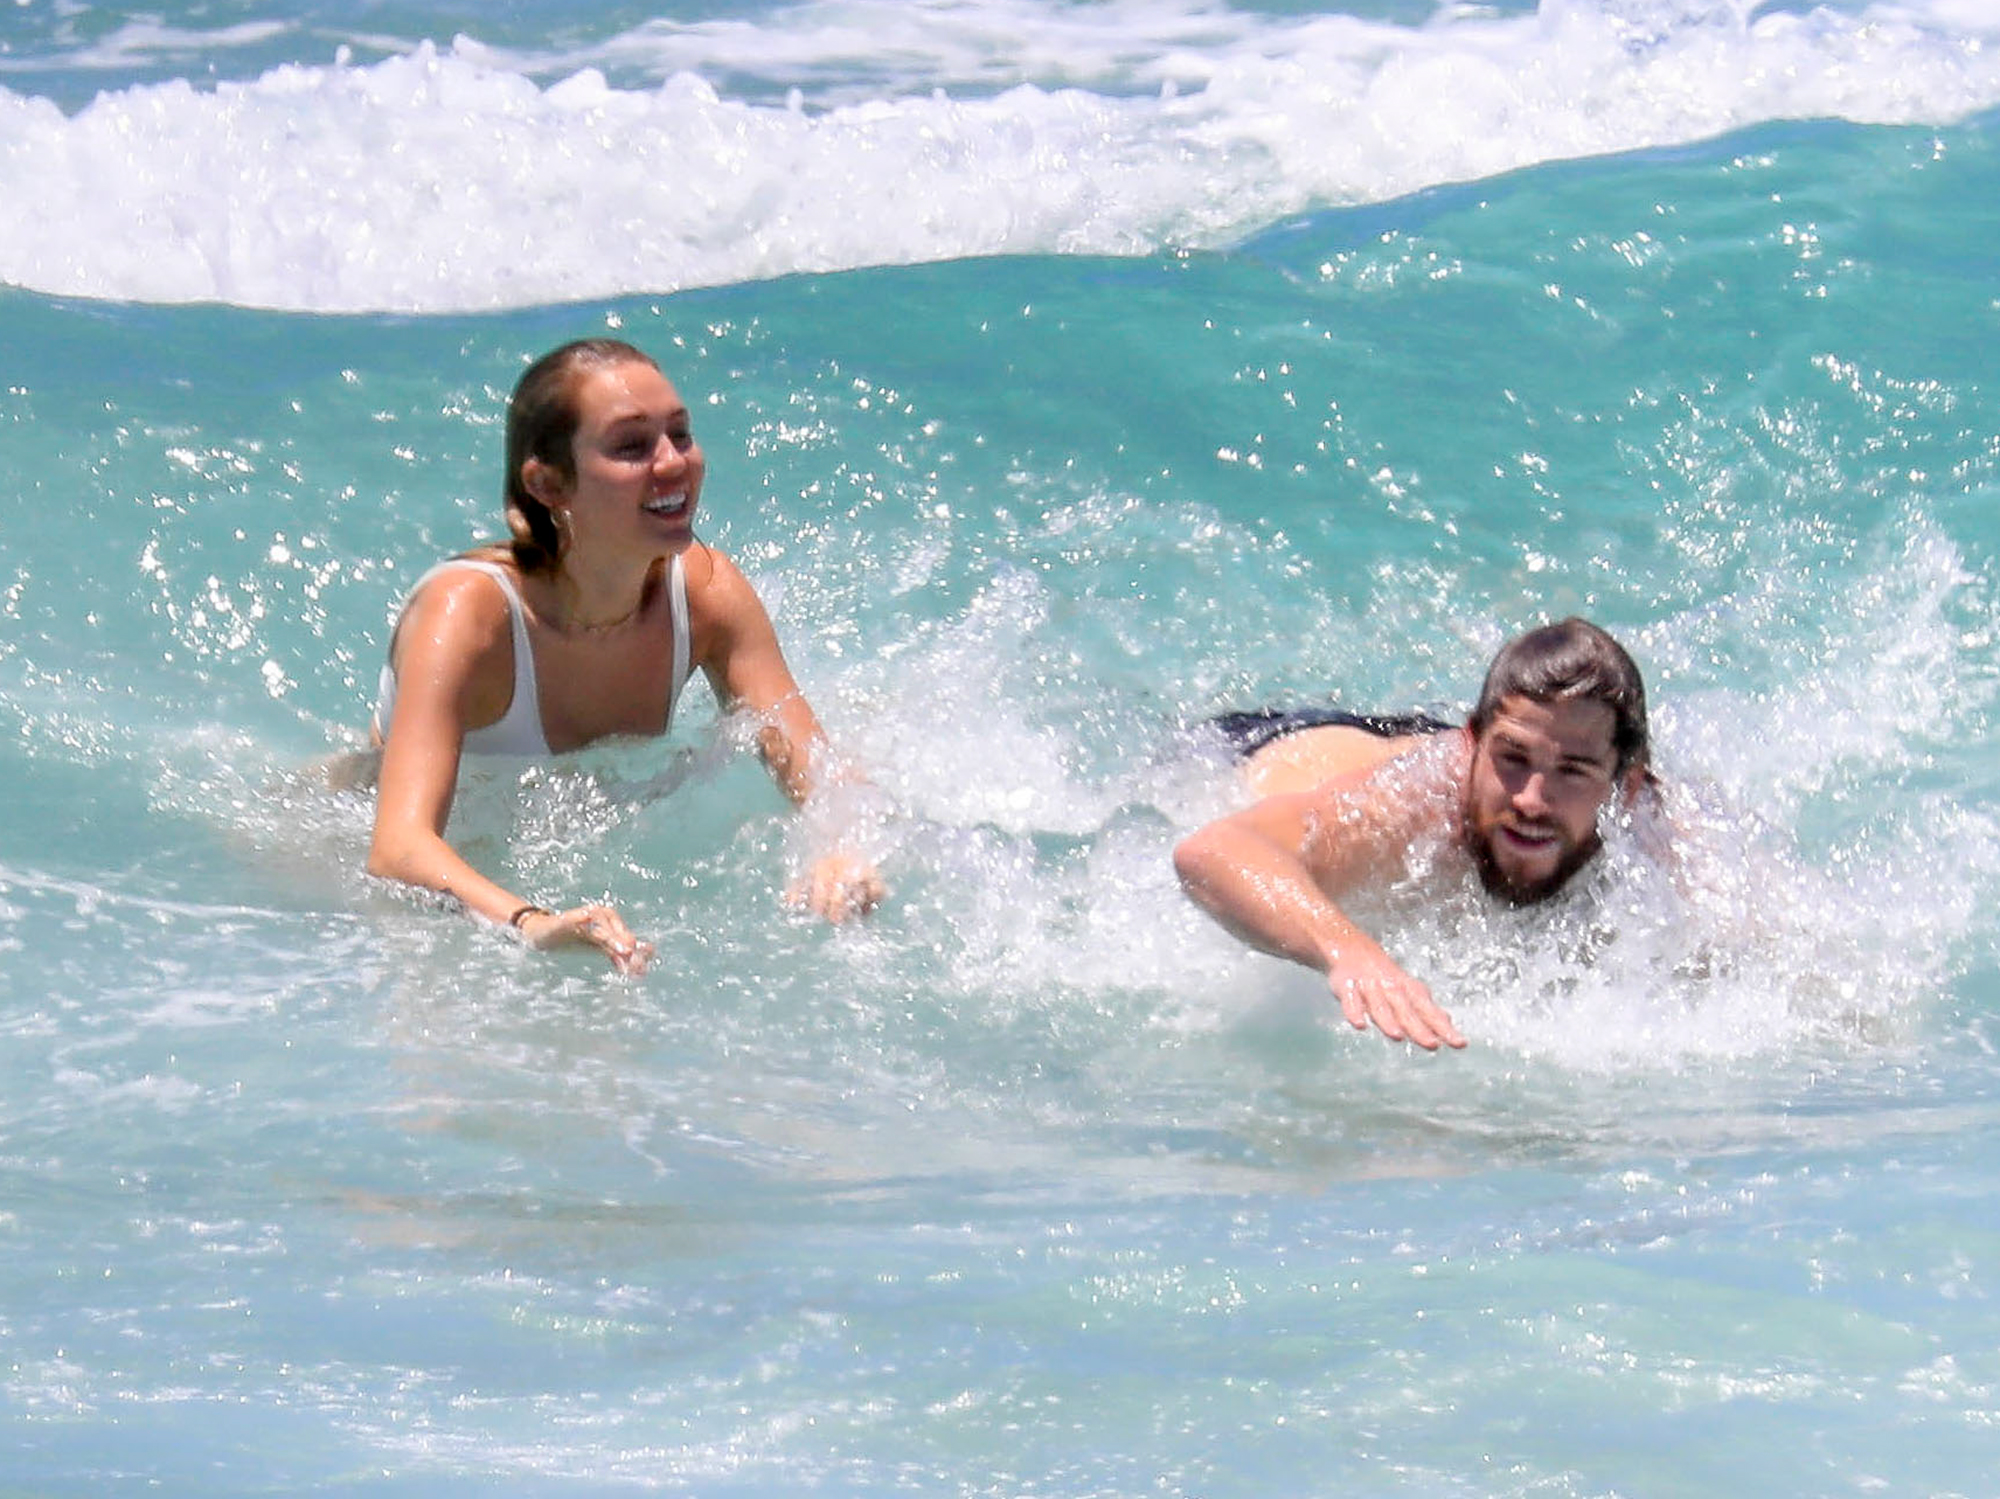 EXCLUSIVE: **NO US PRINT** **PREMIUM EXCLUSIVE RATES APPLY* Miley Cyrus and Liam Hemsworth enjoy a day at the beach on their Australian summer vacation in Byron Bay.